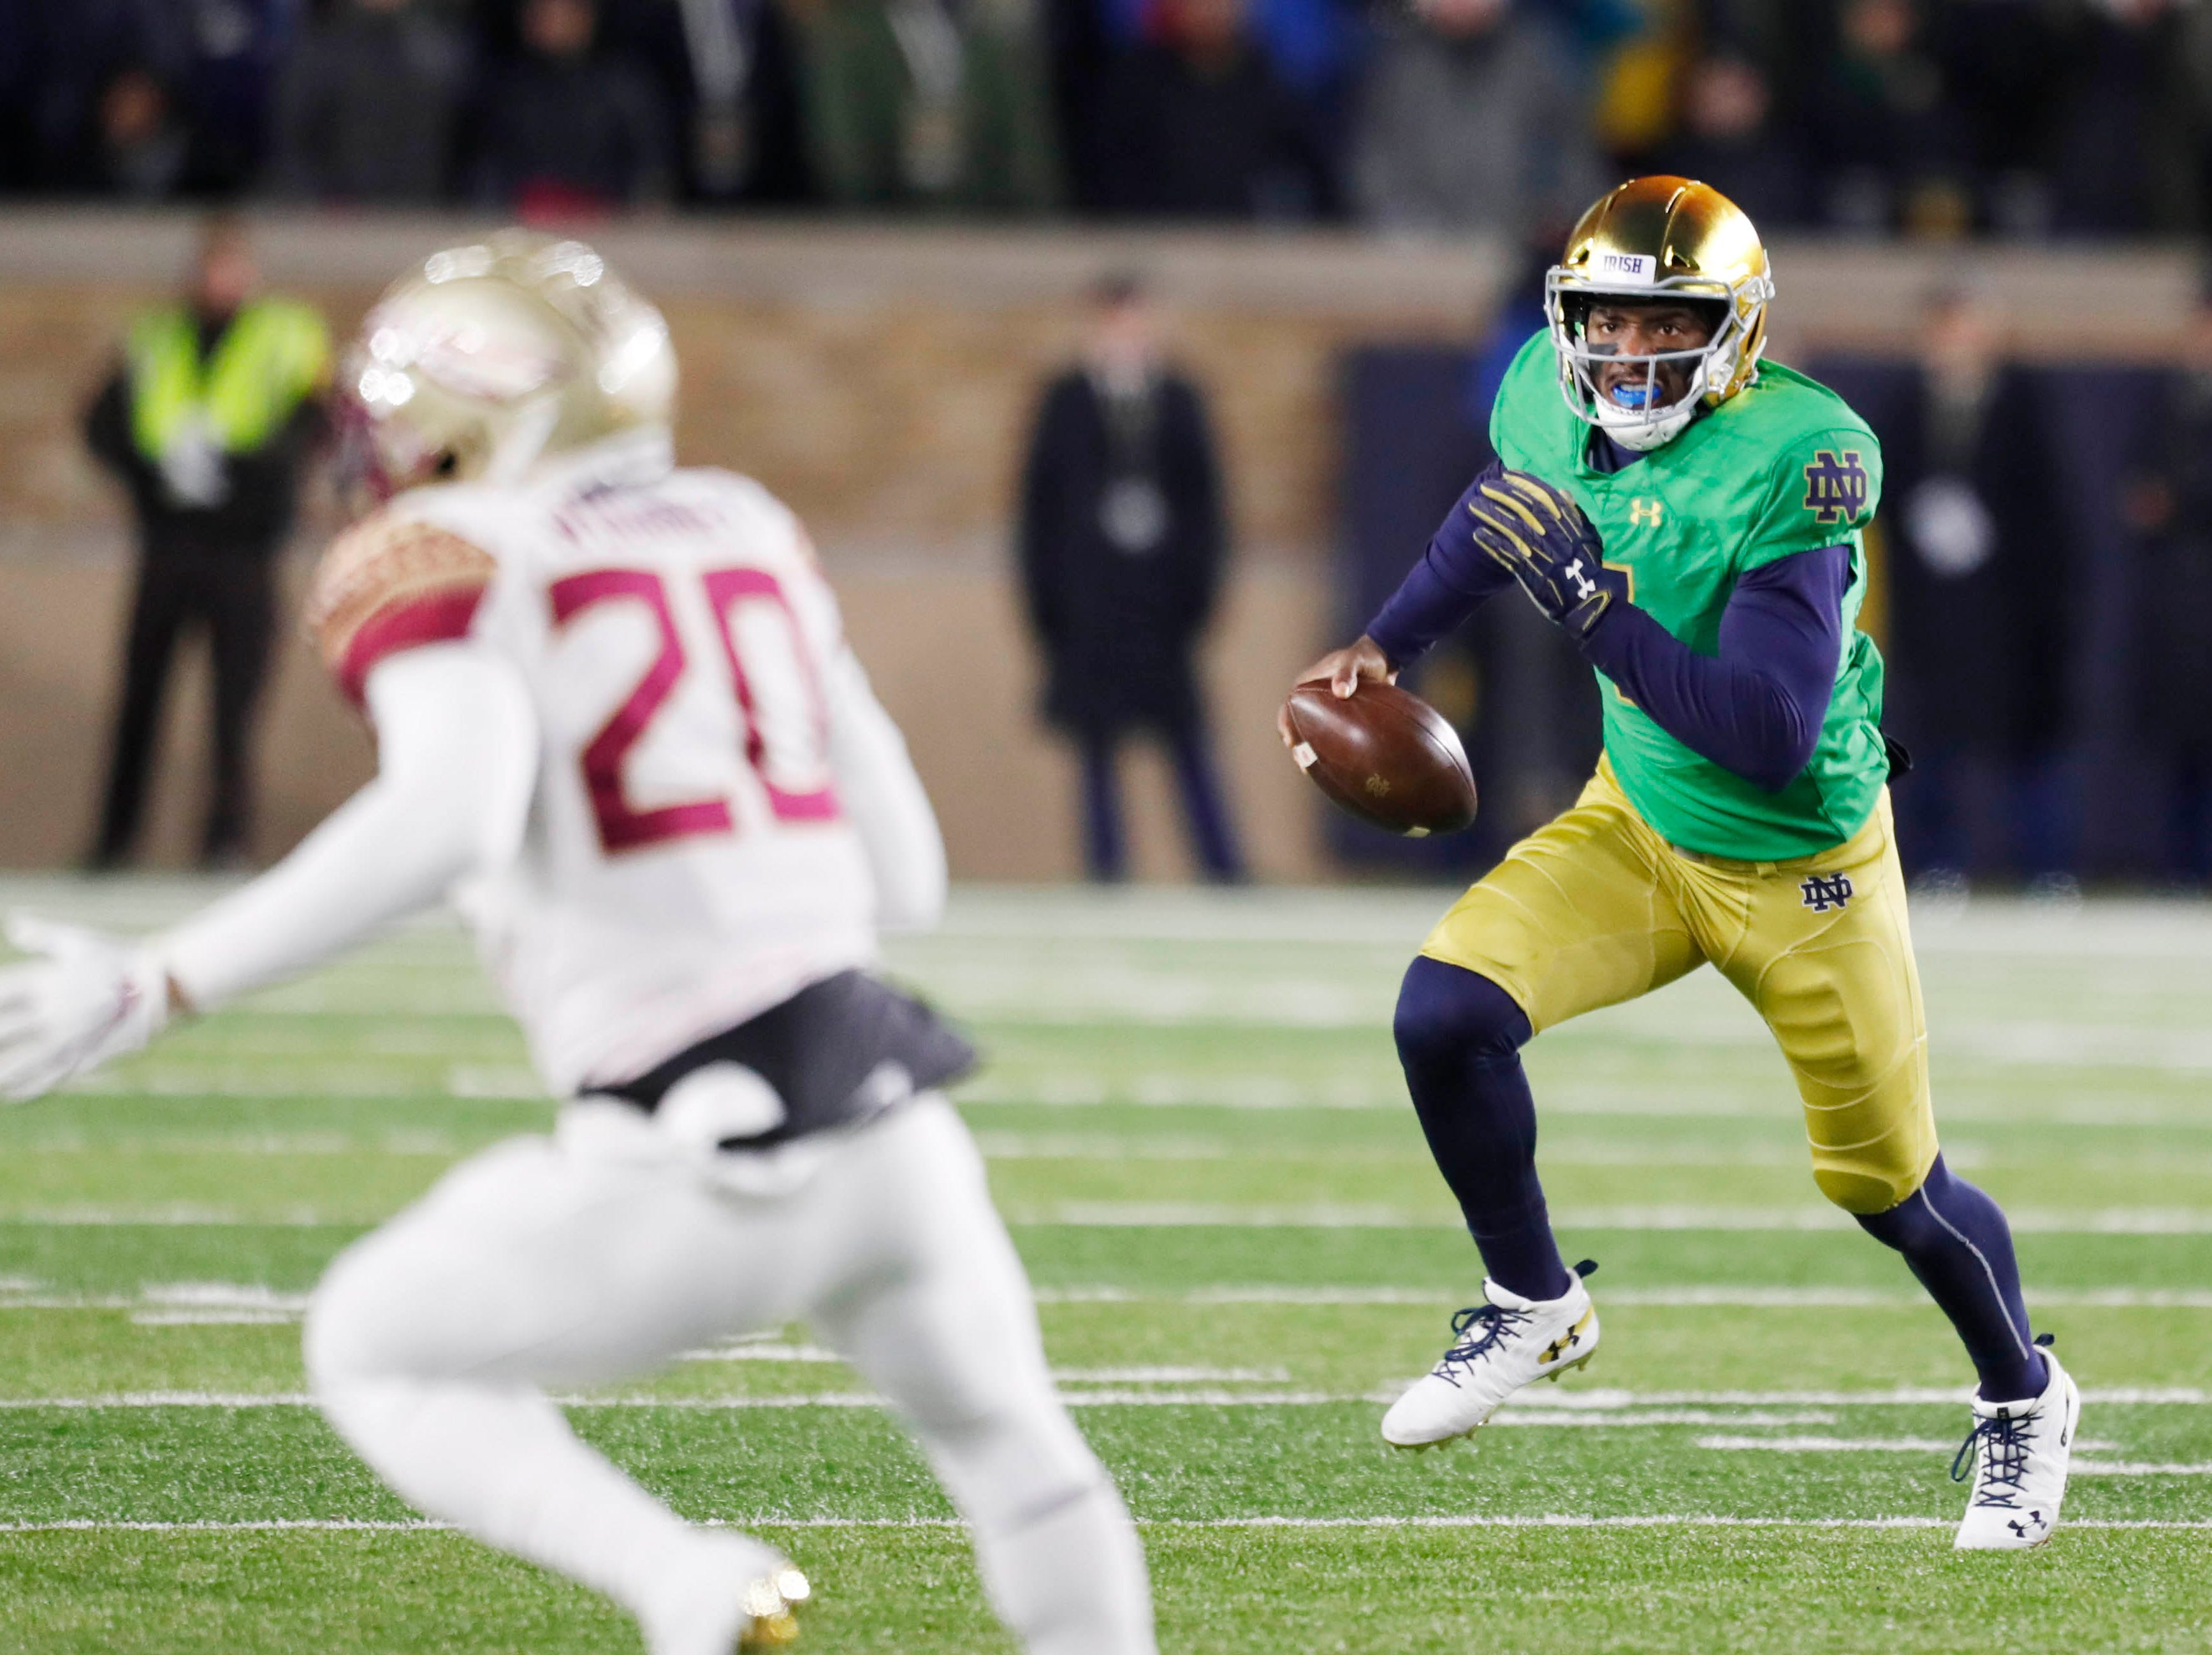 Nov 10, 2018; South Bend, IN, USA; Notre Dame Fighting Irish quarterback Brandon Wimbush (7) scrambles out of the pocket against the Florida State Seminoles during the first quarter at Notre Dame Stadium. Mandatory Credit: Brian Spurlock-USA TODAY Sports